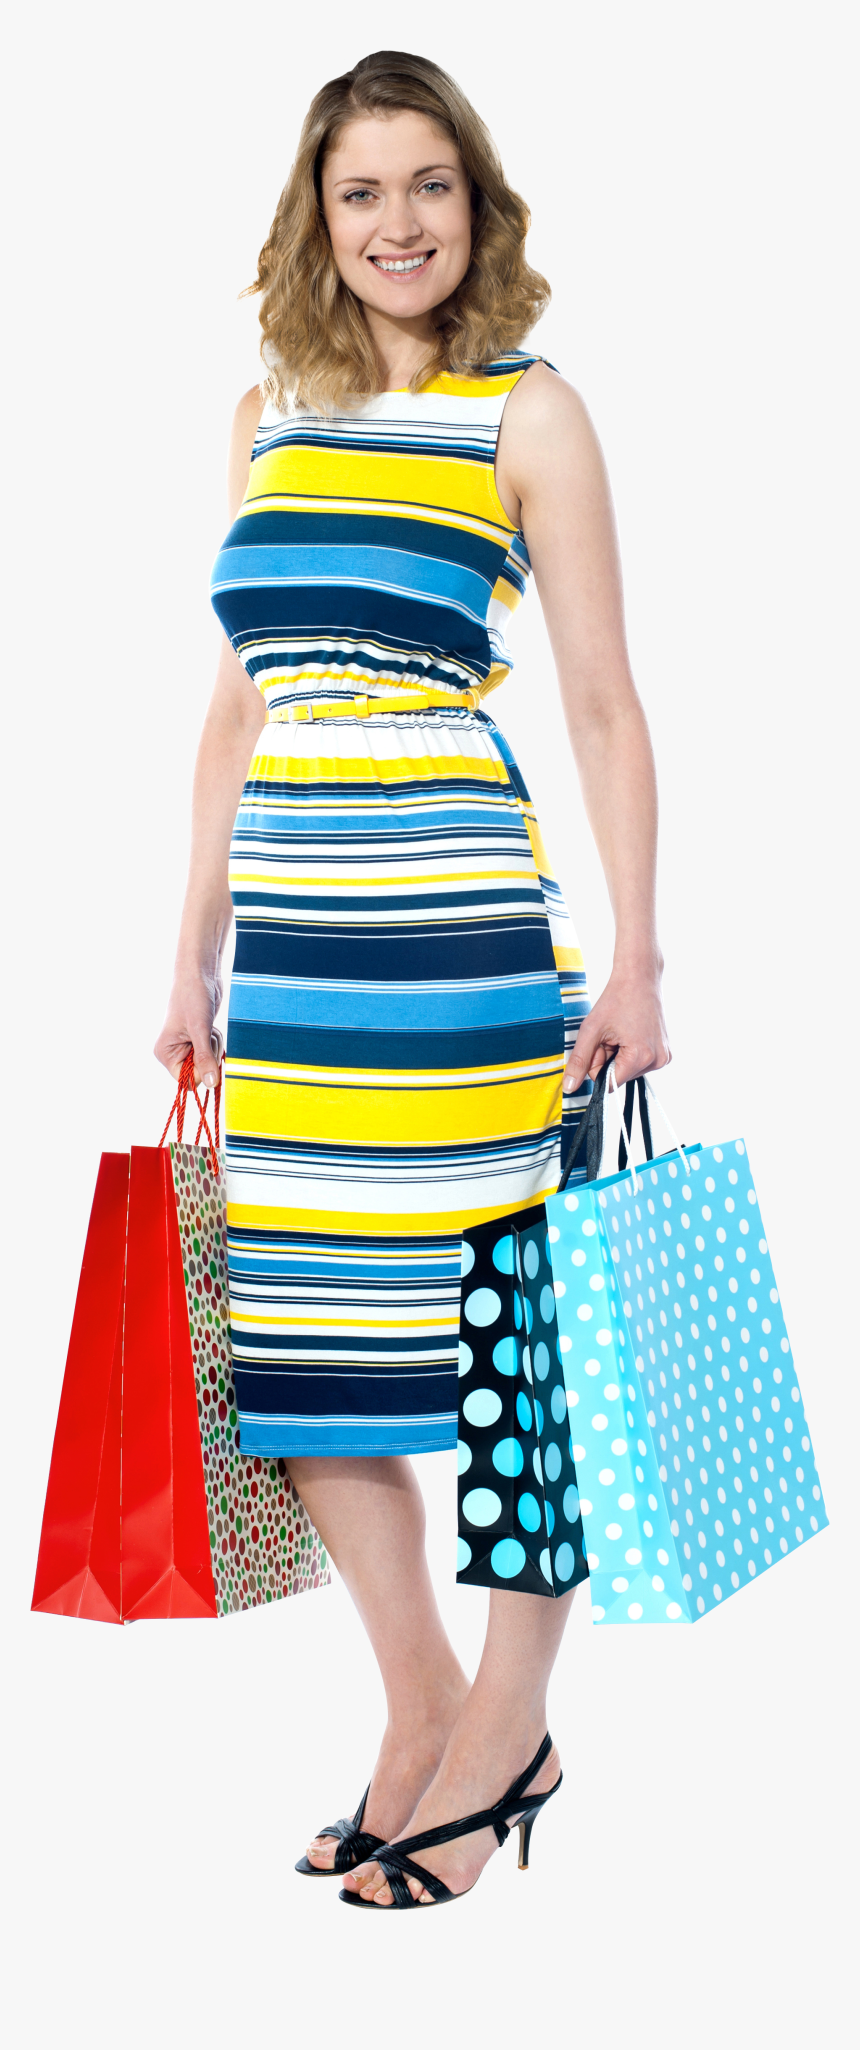 Shopping Women Png, Transparent Png, Free Download